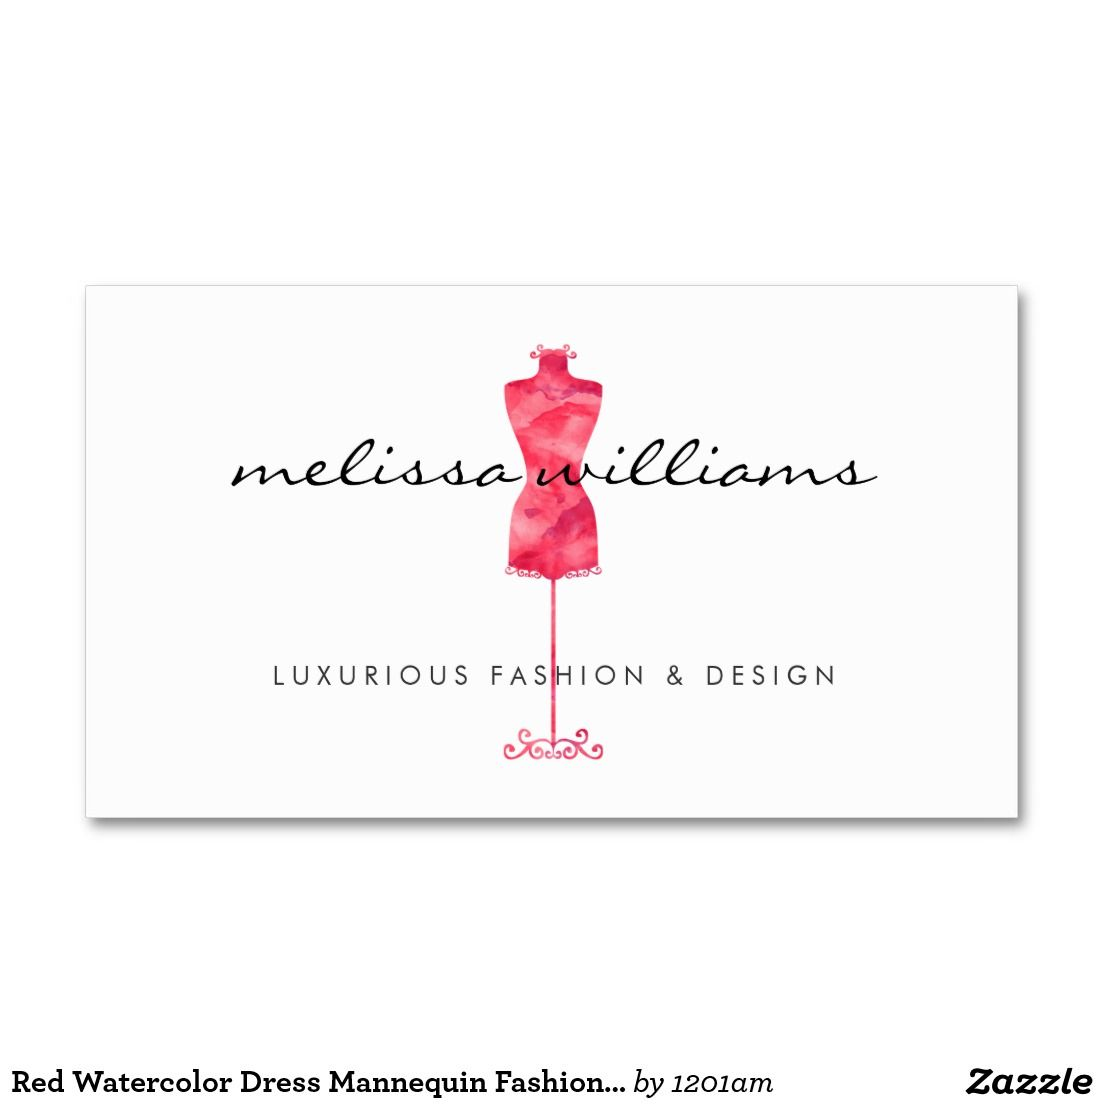 Red Watercolor Dress Mannequin Customizable Business Card For Boutiques Fashion Designers Stylists Bloggers And More